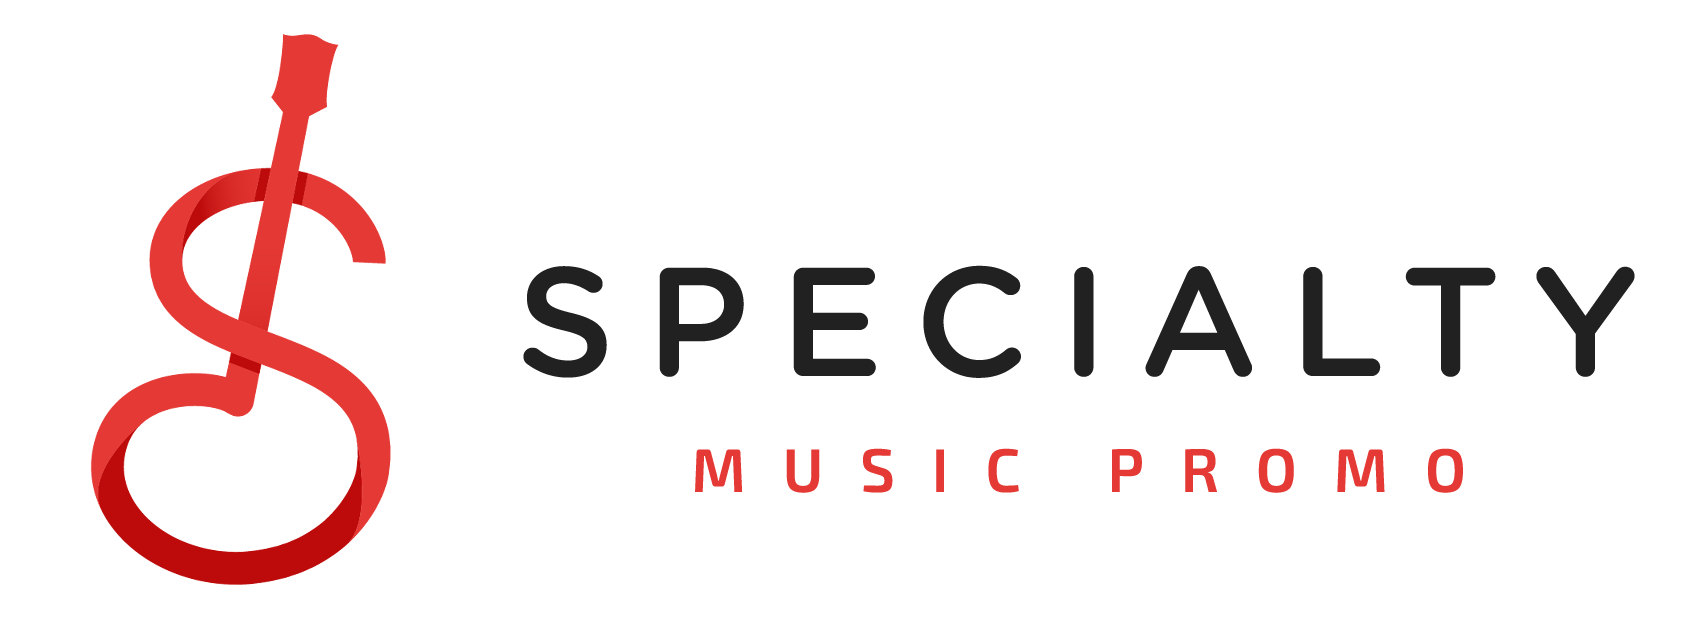 Specialty Music Promo